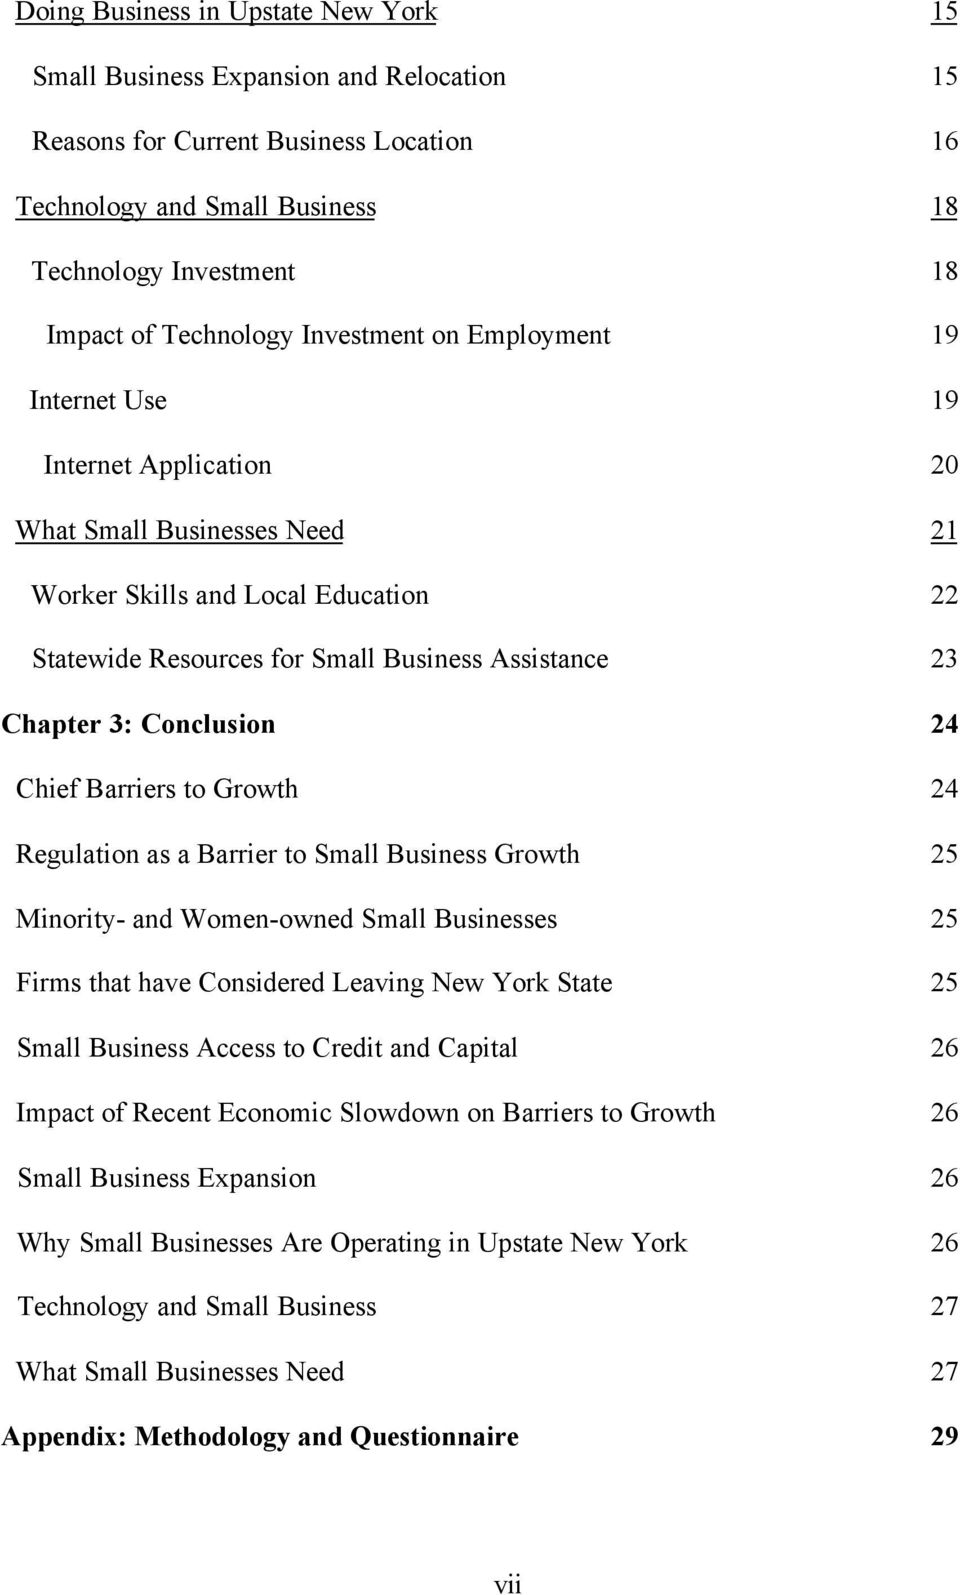 Chapter 3: Conclusion 24 Chief Barriers to Growth 24 Regulation as a Barrier to Small Business Growth 25 Minority- and Women-owned Small Businesses 25 Firms that have Considered Leaving New York